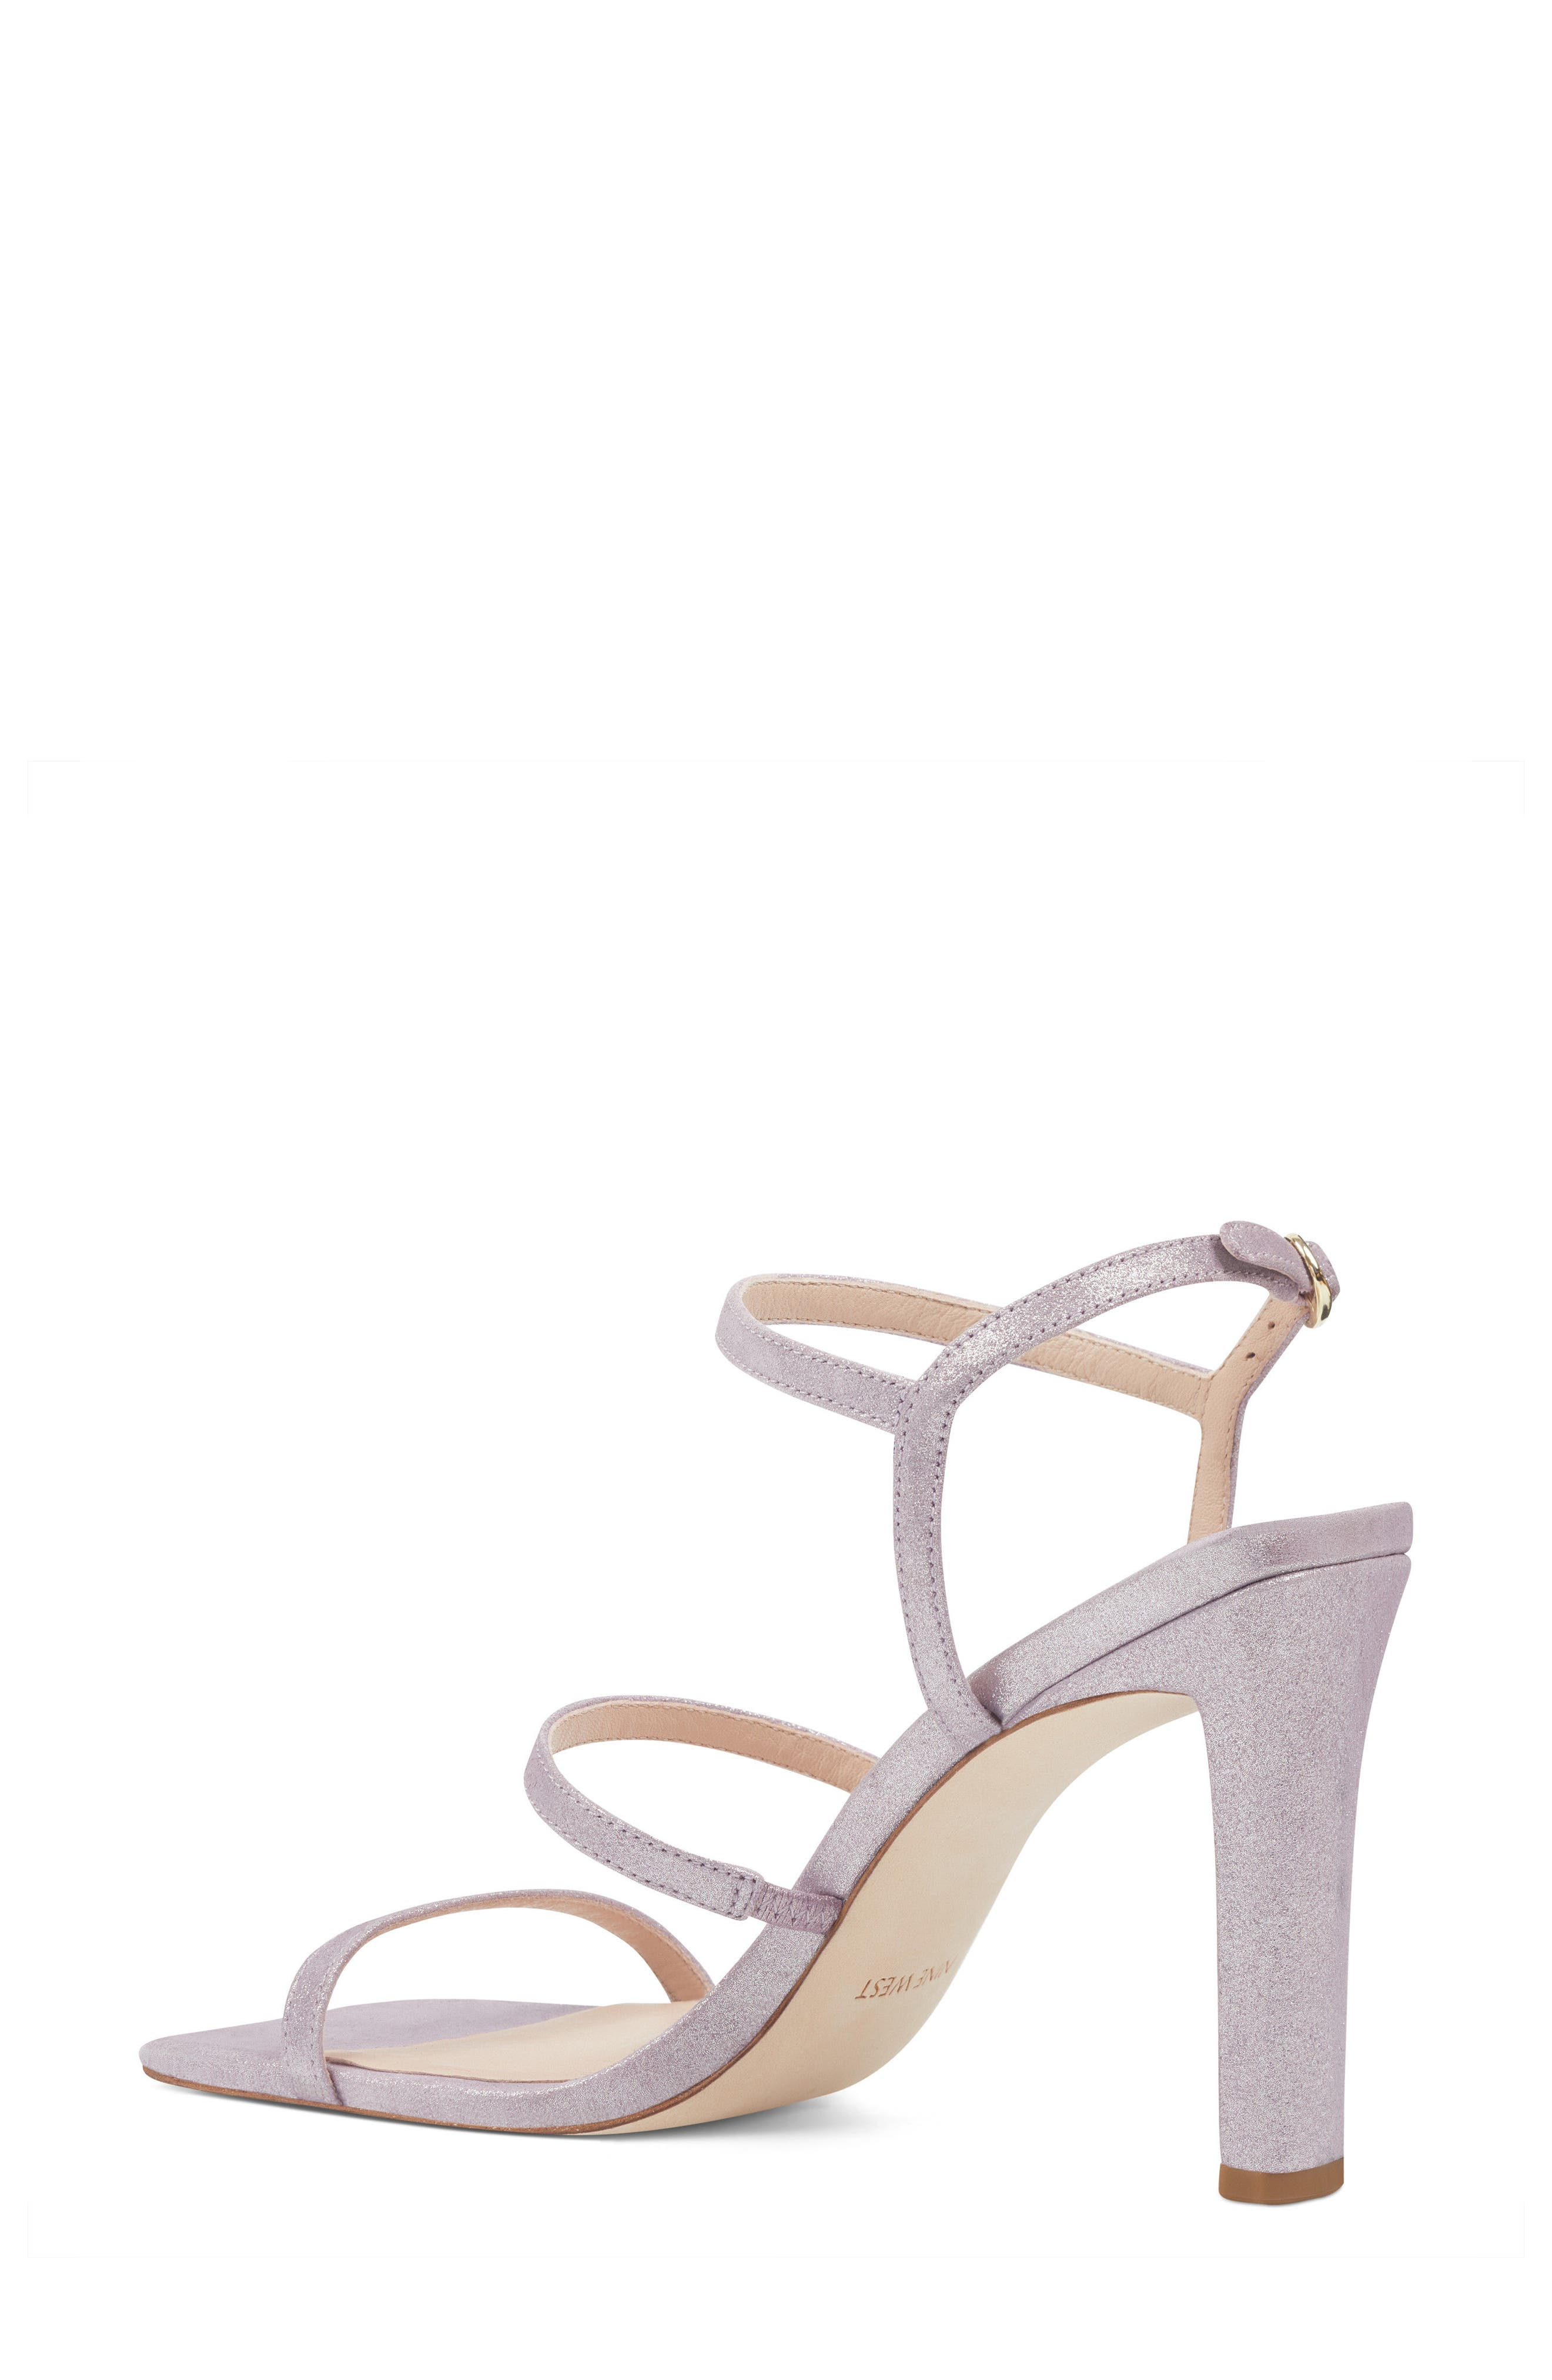 Gabelle - 40th Anniversary Capsule Collection Sandal,                             Alternate thumbnail 2, color,                             Light Purple Leather